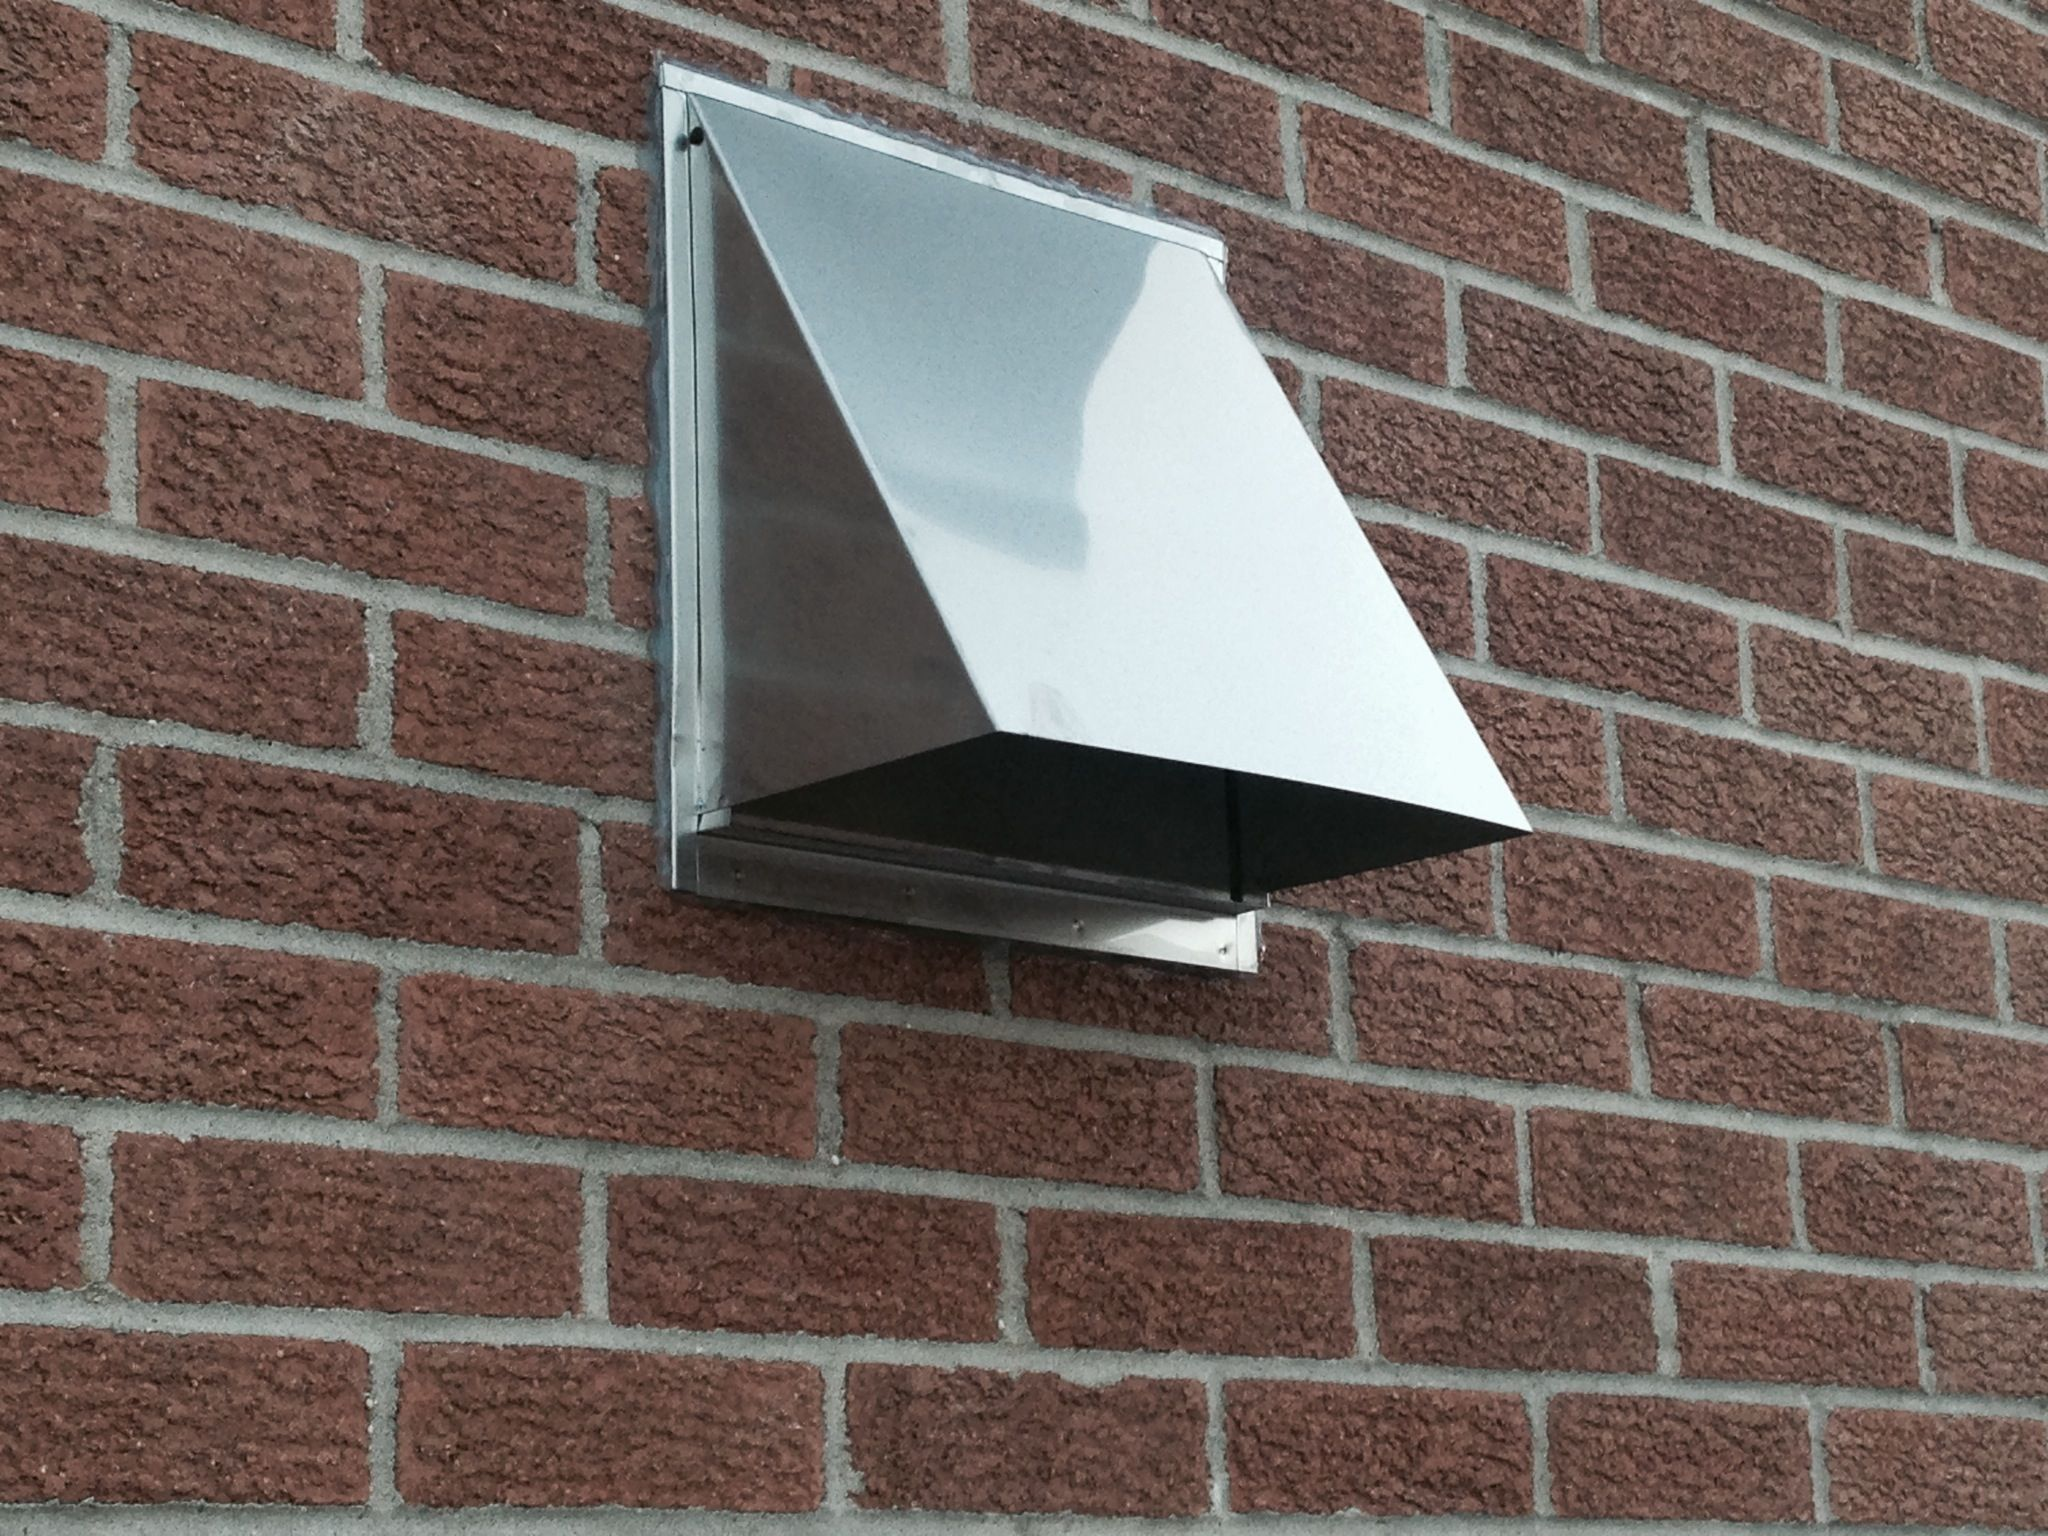 Exterior wall vent covers wall coverings pinterest vent covers range hood vent and for Bathroom exhaust fan exterior cover